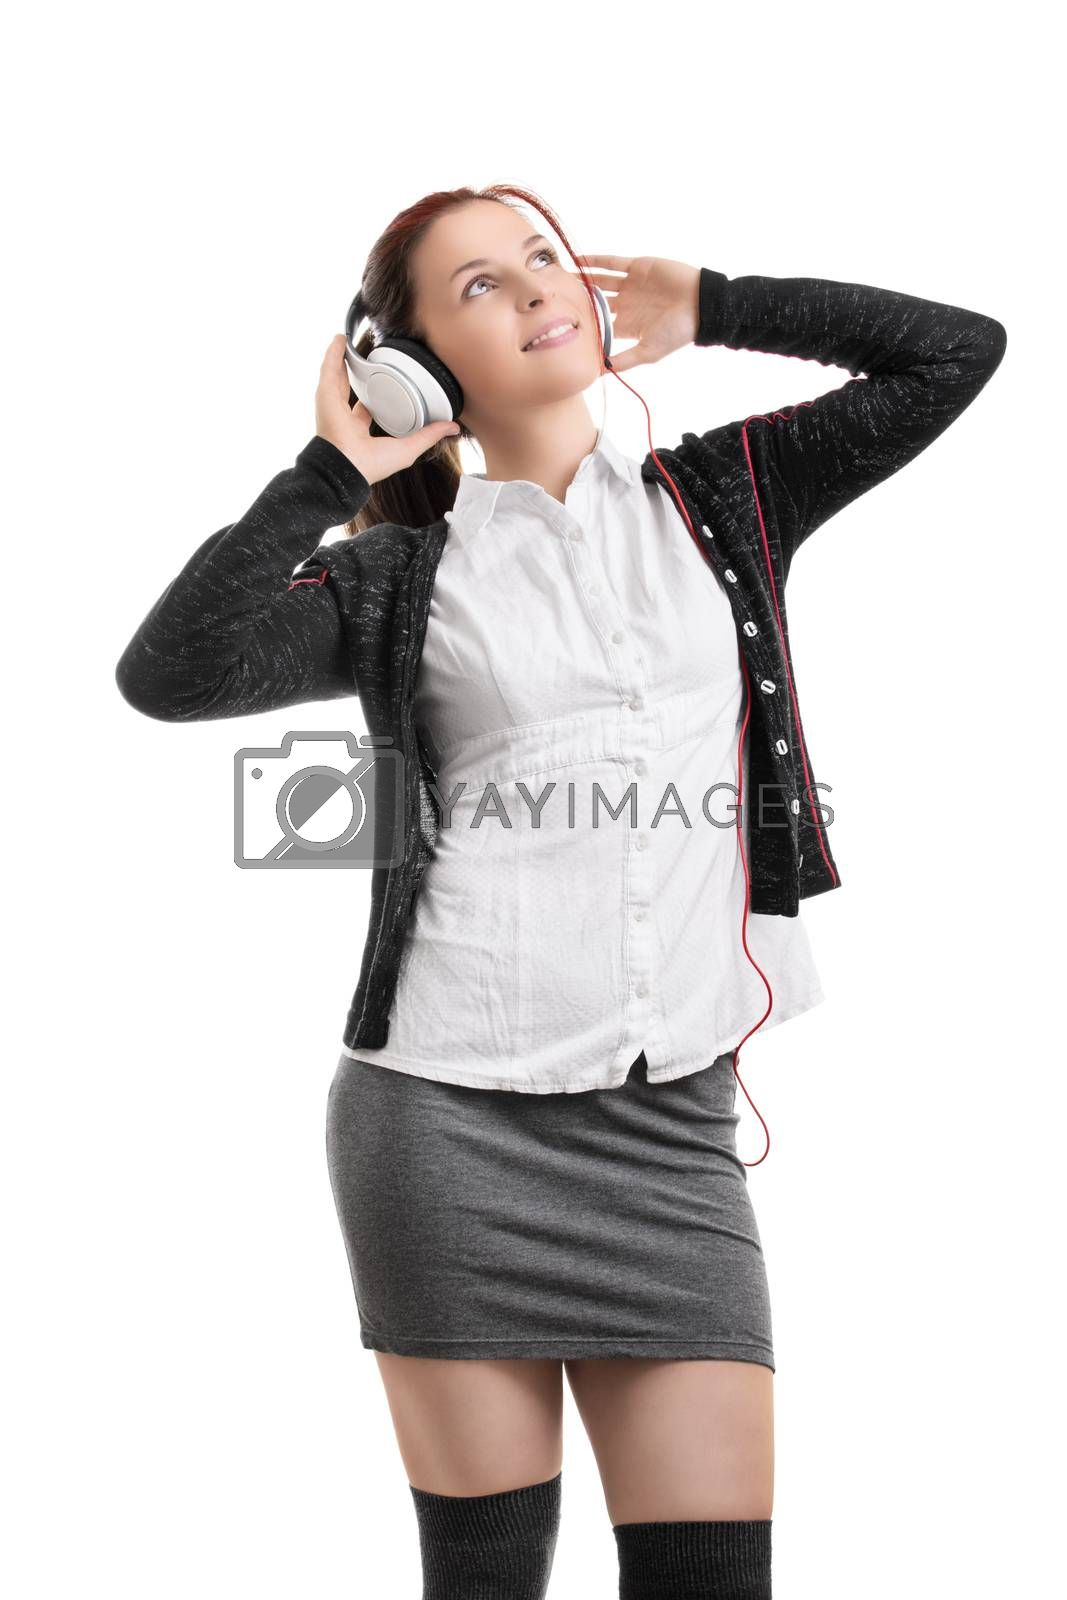 Young student girl with headphones listening to music by Mendelex